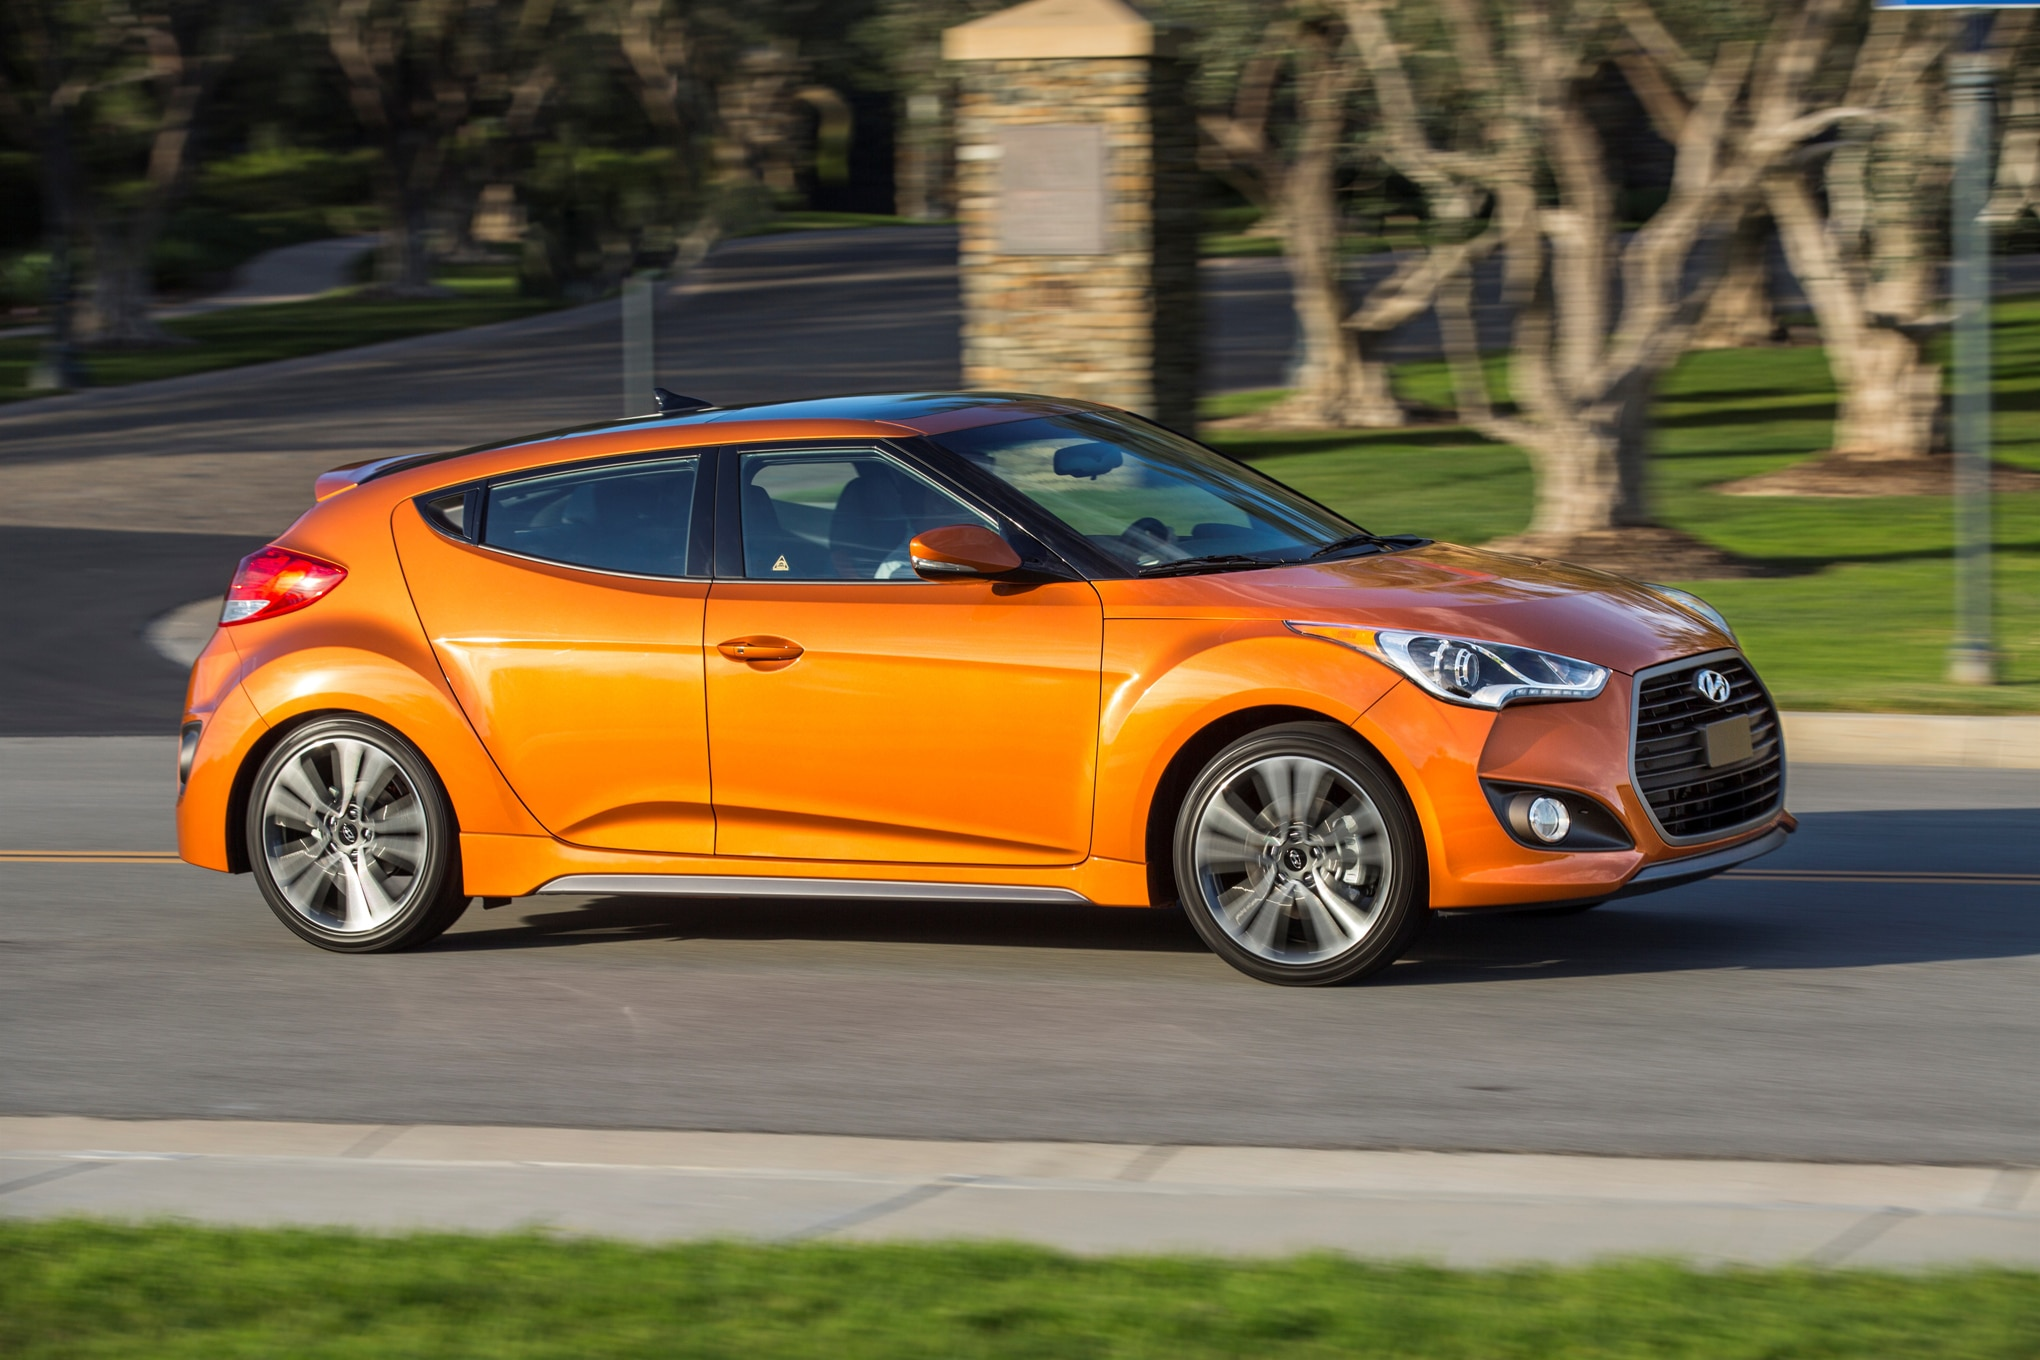 Hyundai Veloster Wiring Harness Turbo Trailer Blood Type Racing Is Headed To Sema Automobilemag Com 2040x1360